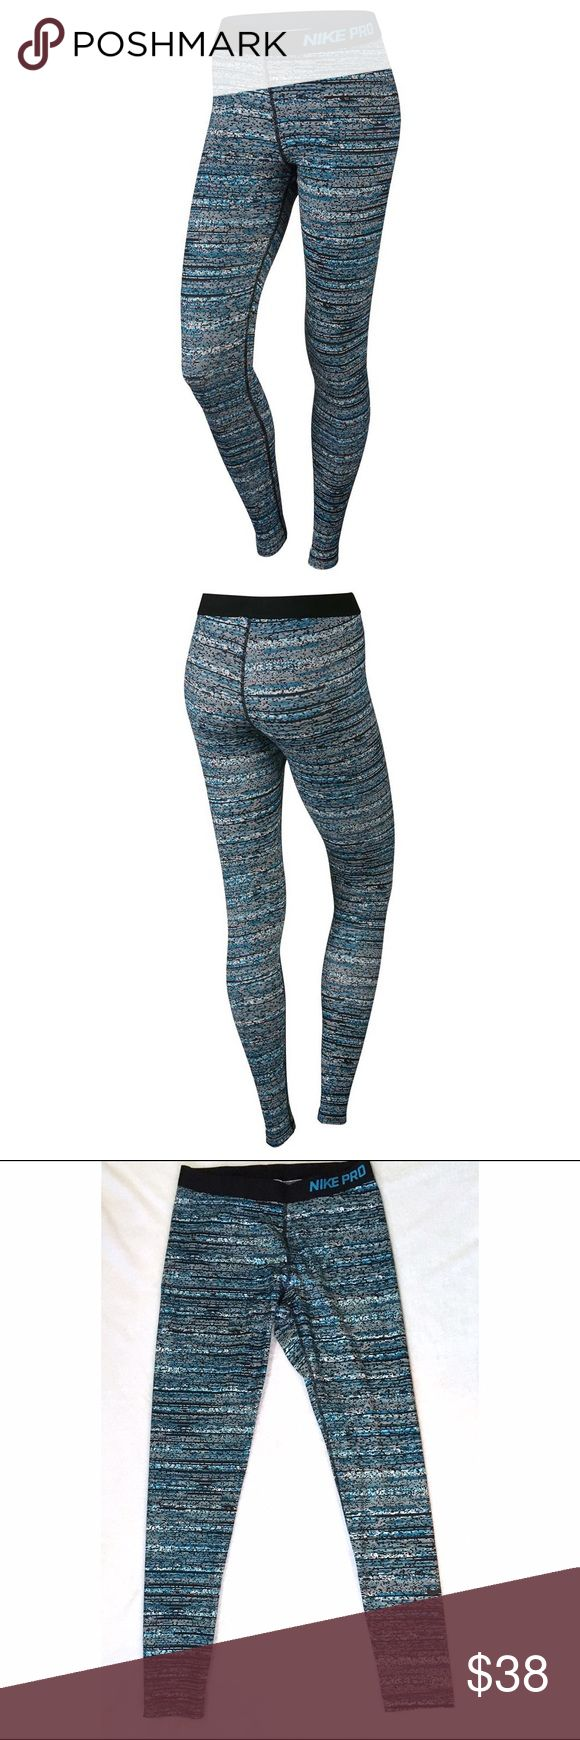 Nike Pro Blue Static Pants The Nike Pro Warm Static Womens Training Tights are made with snug, sweat-wicking fabric thats brushed on the interior for exceptional cold-weather comfort. Nike Pants